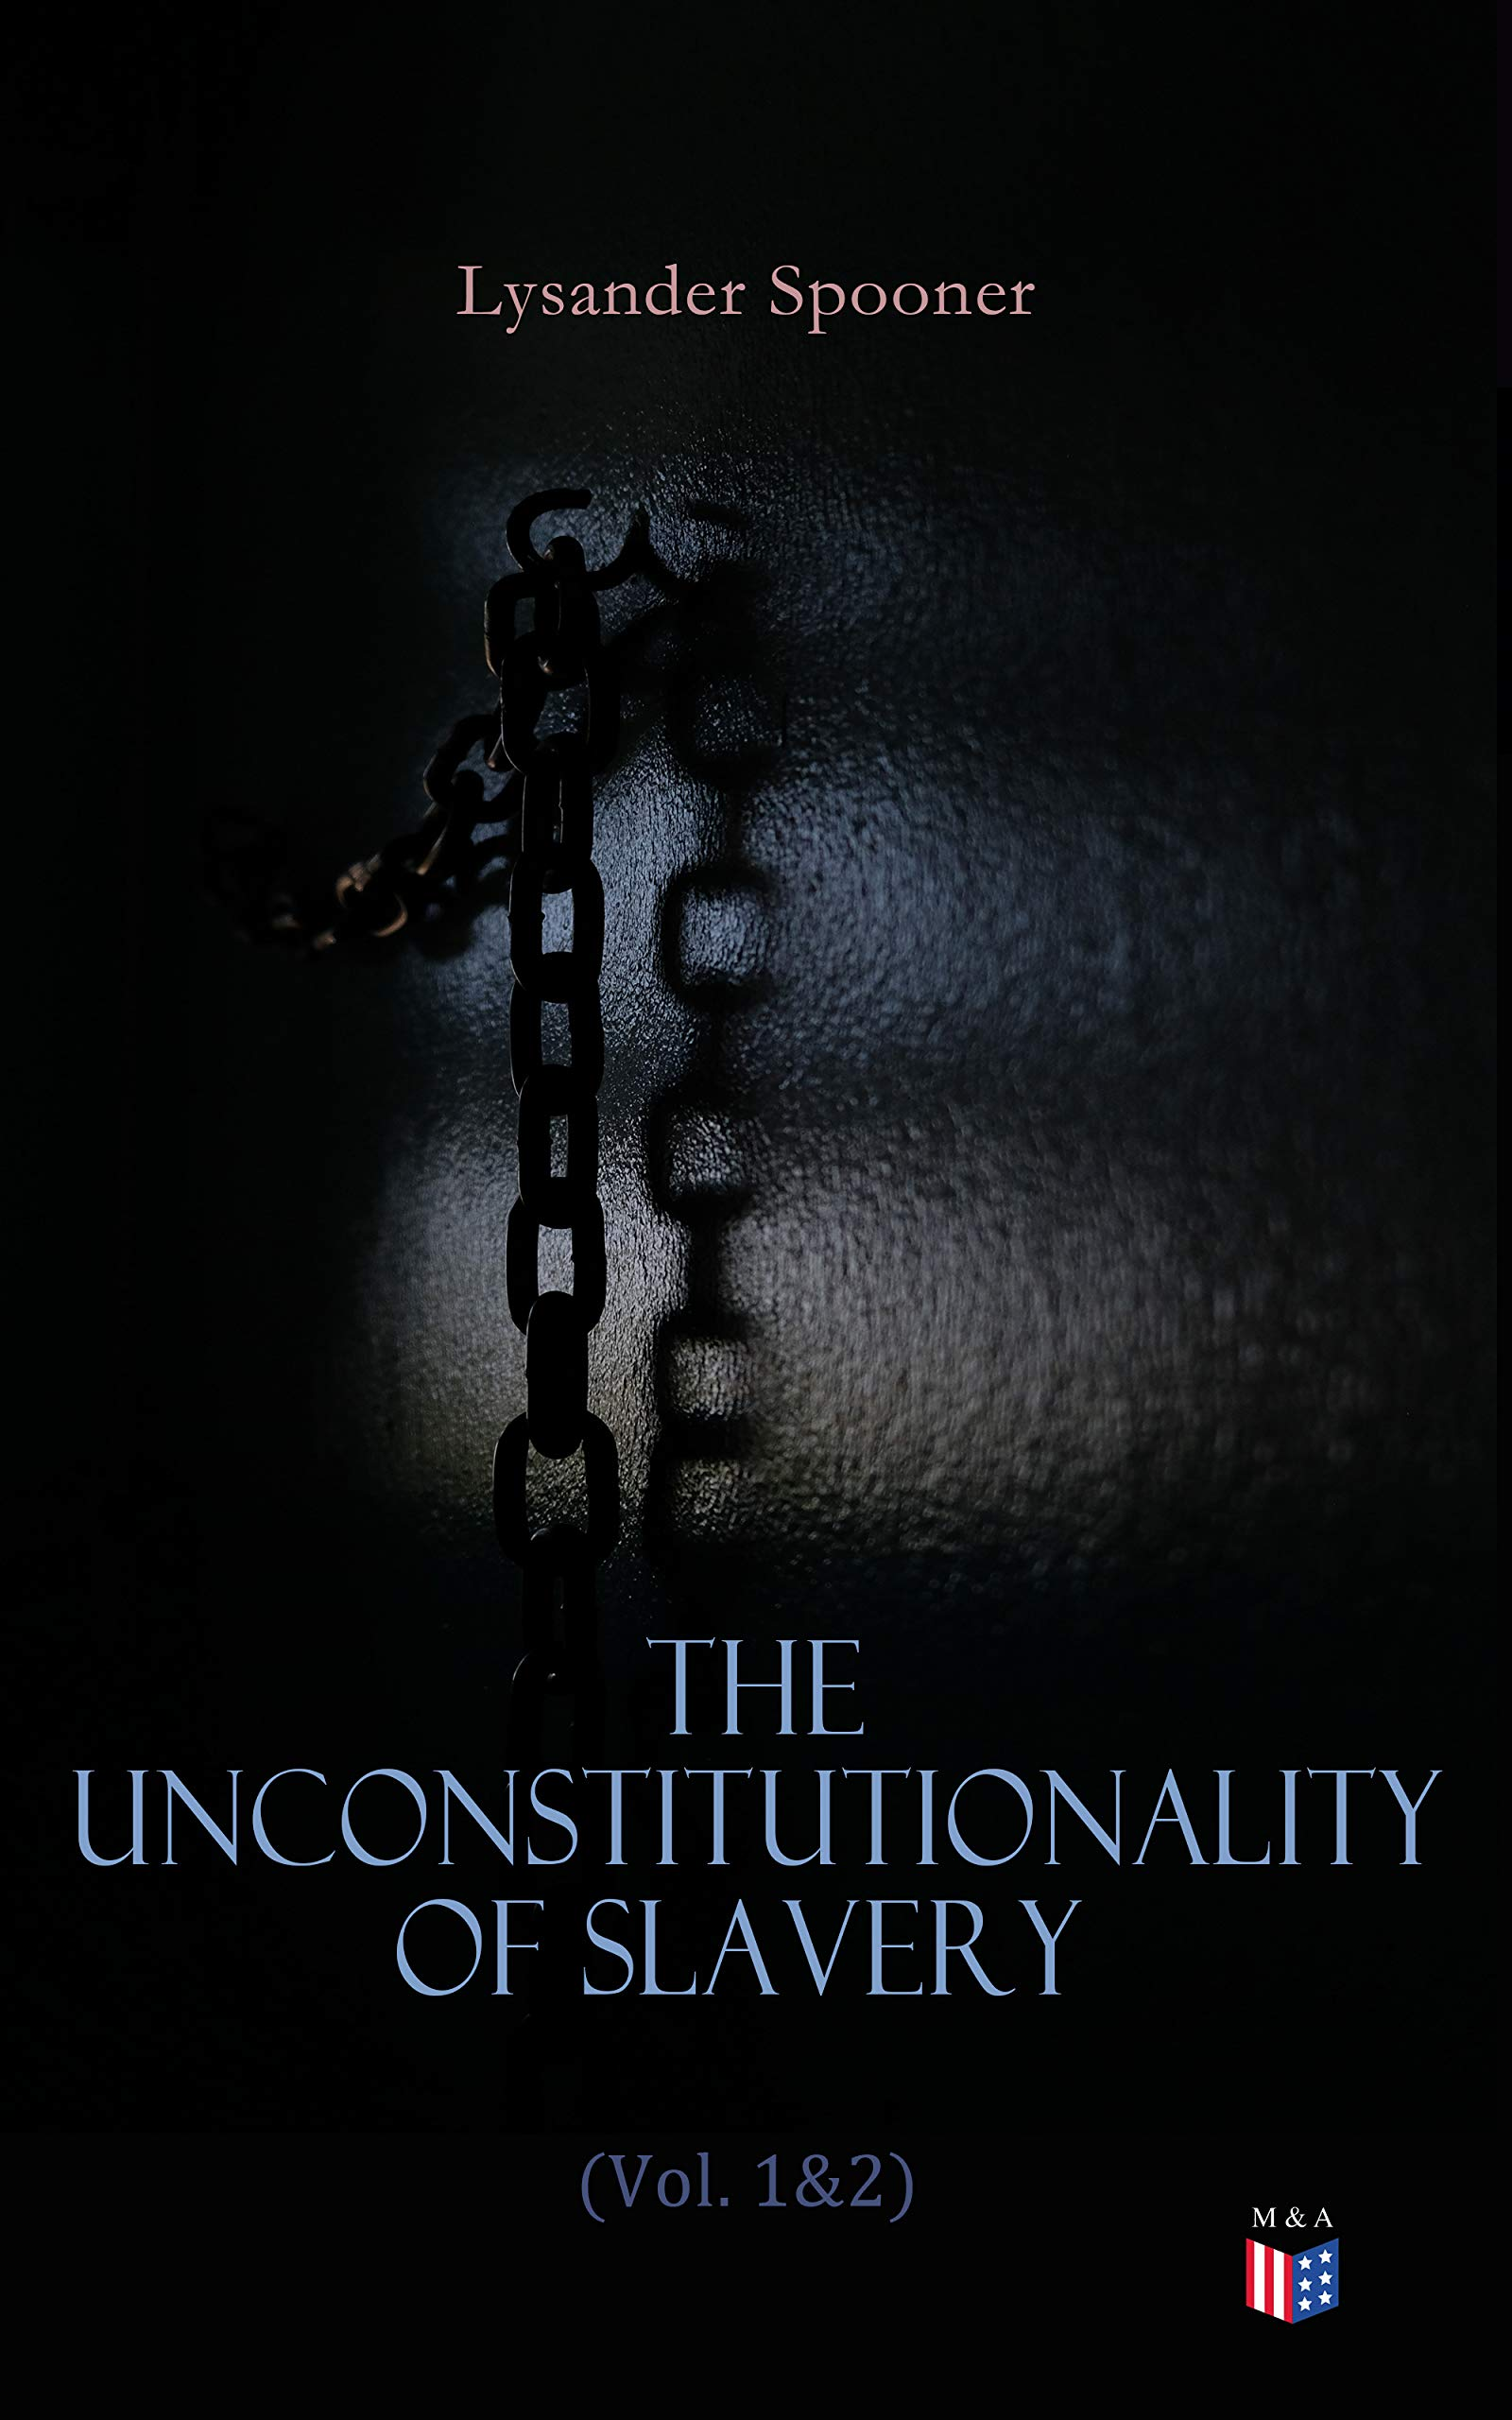 The Unconstitutionality of Slavery (Vol. 1&2): Complete Edition